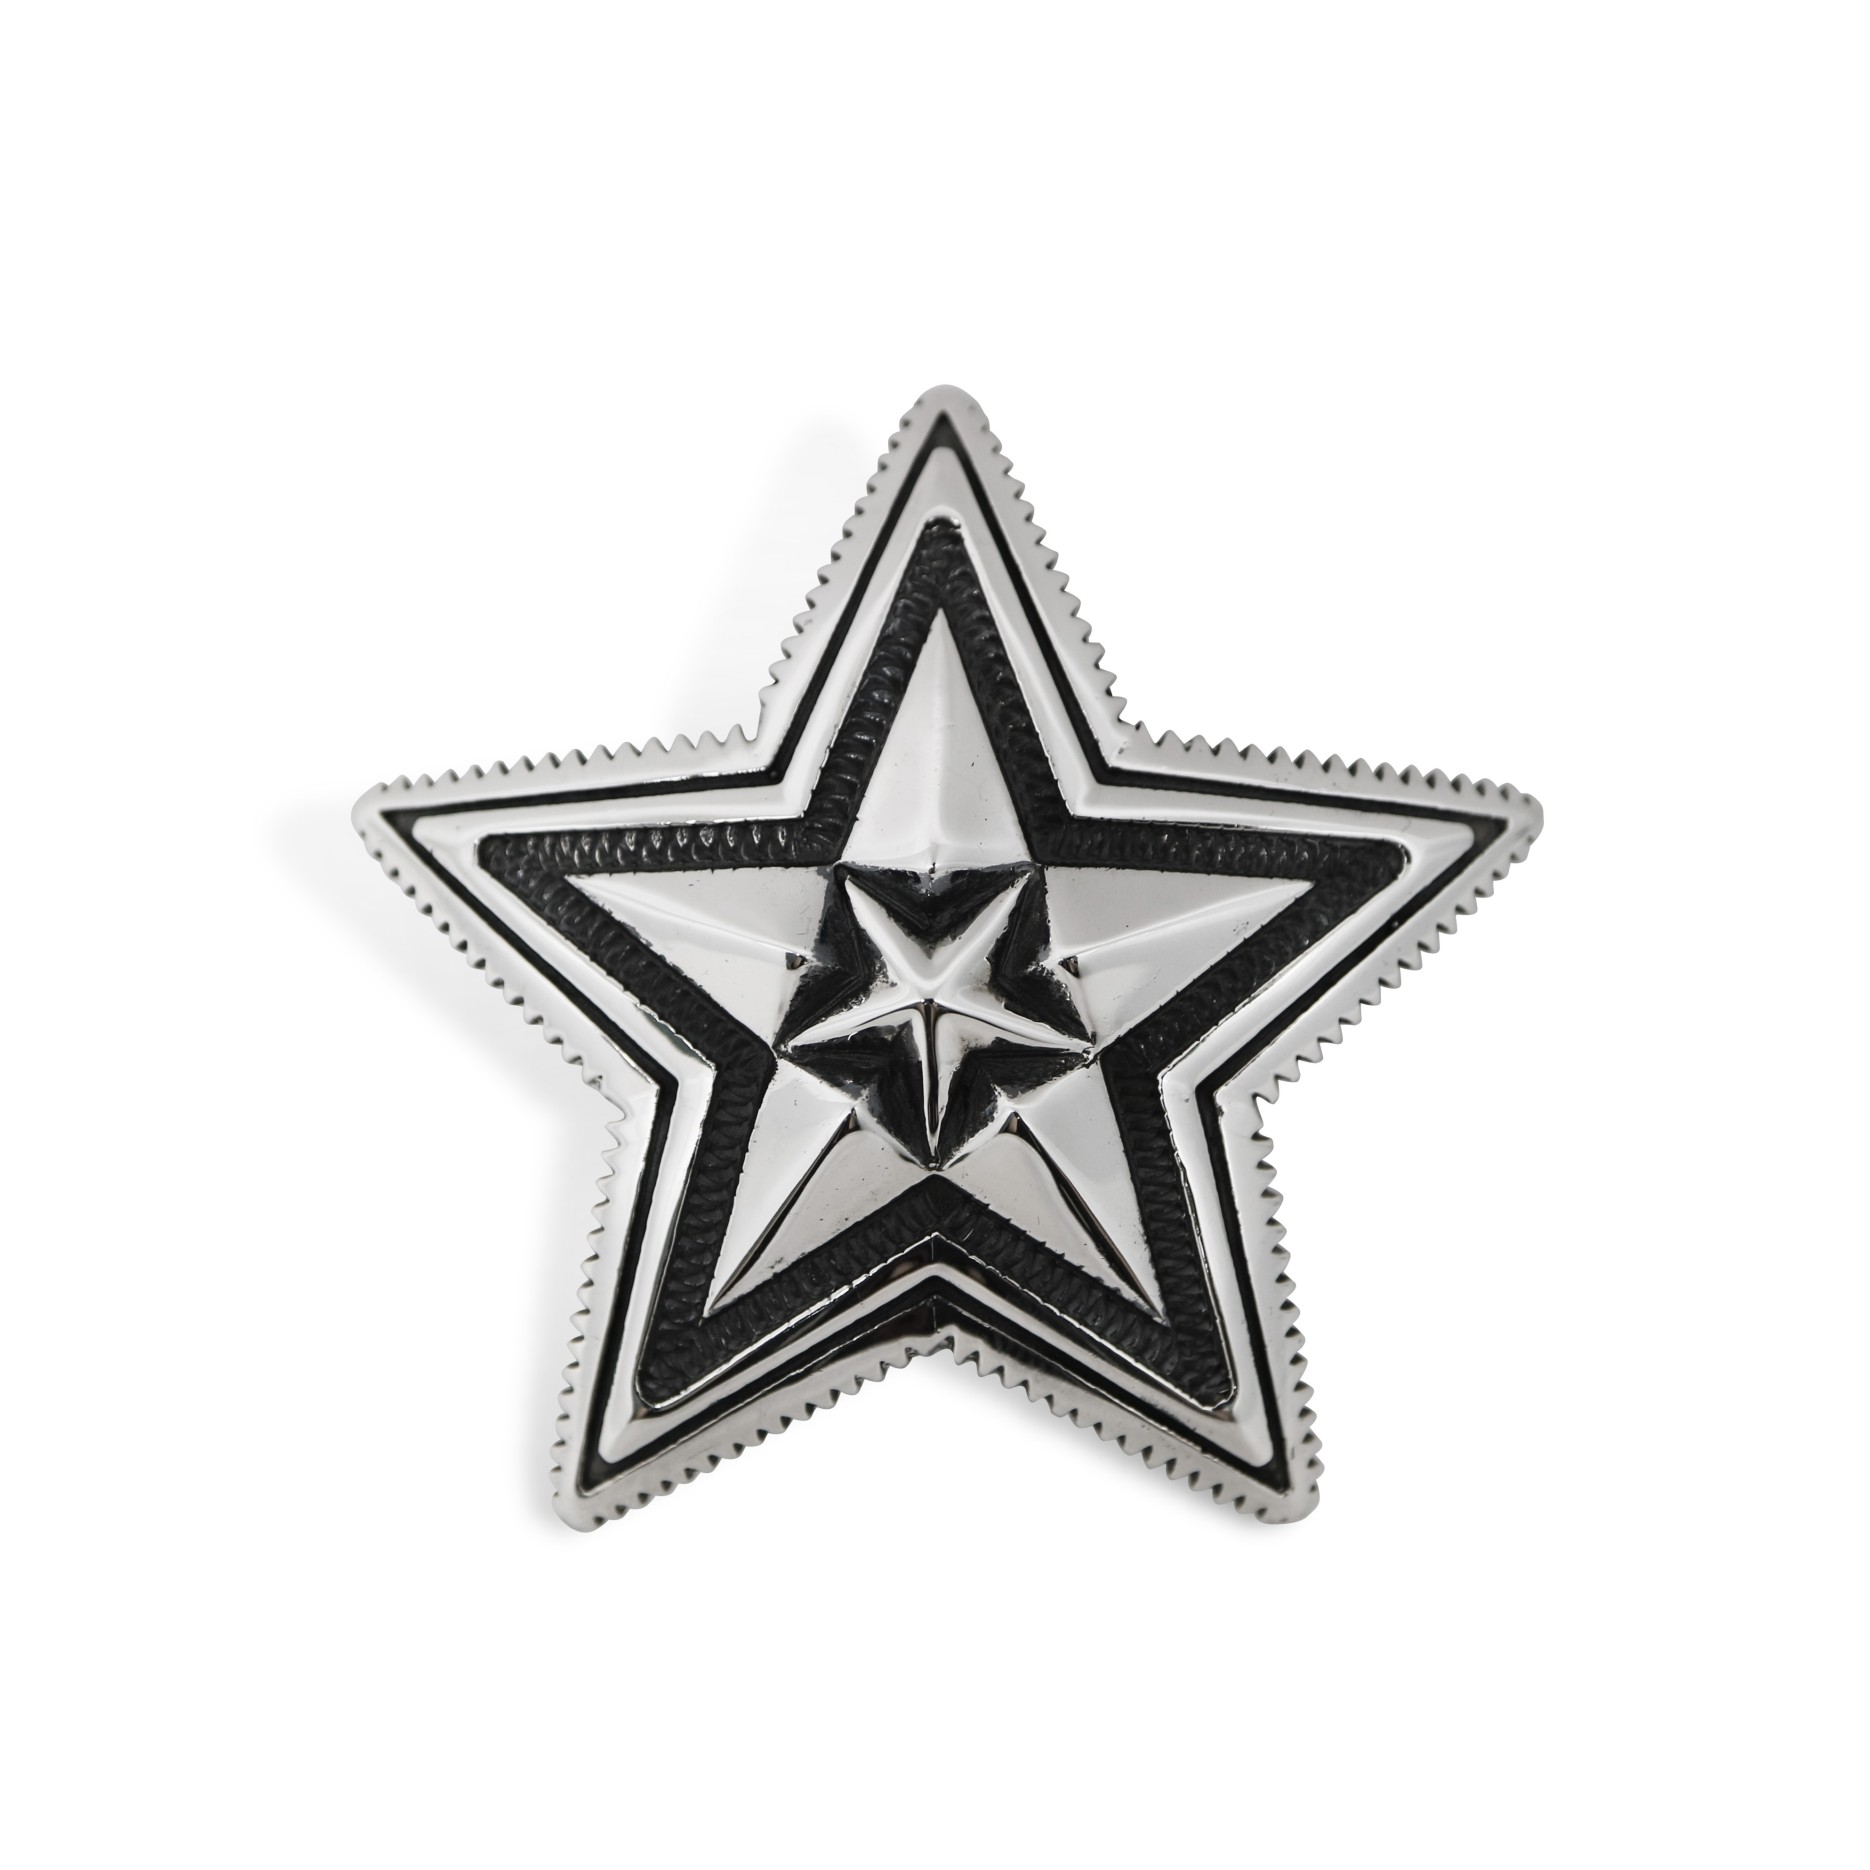 EXTRA LARGE STAR IN STAR COIN EDGE PENDANT  [USD $950]